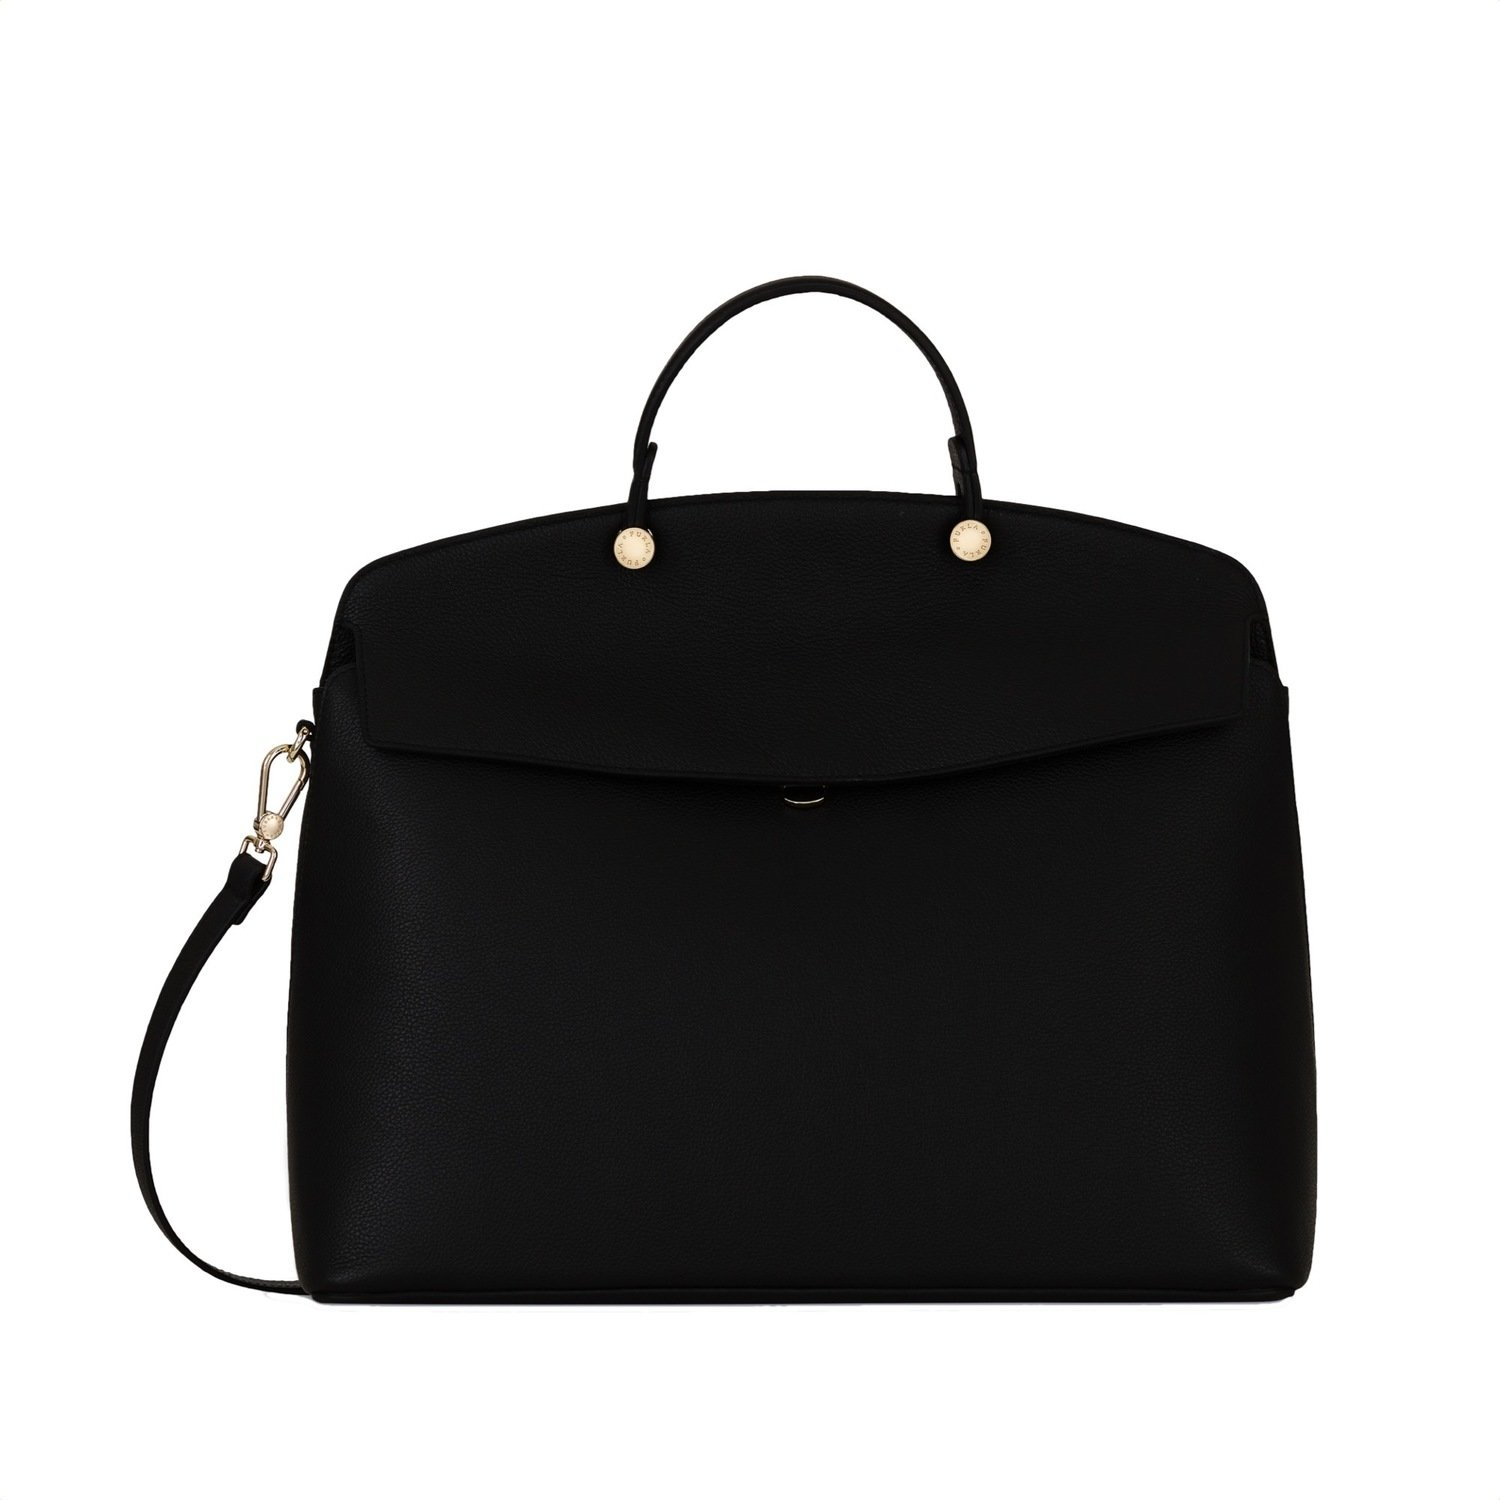 FURLA - MY Piper L Top Handle - Onyx